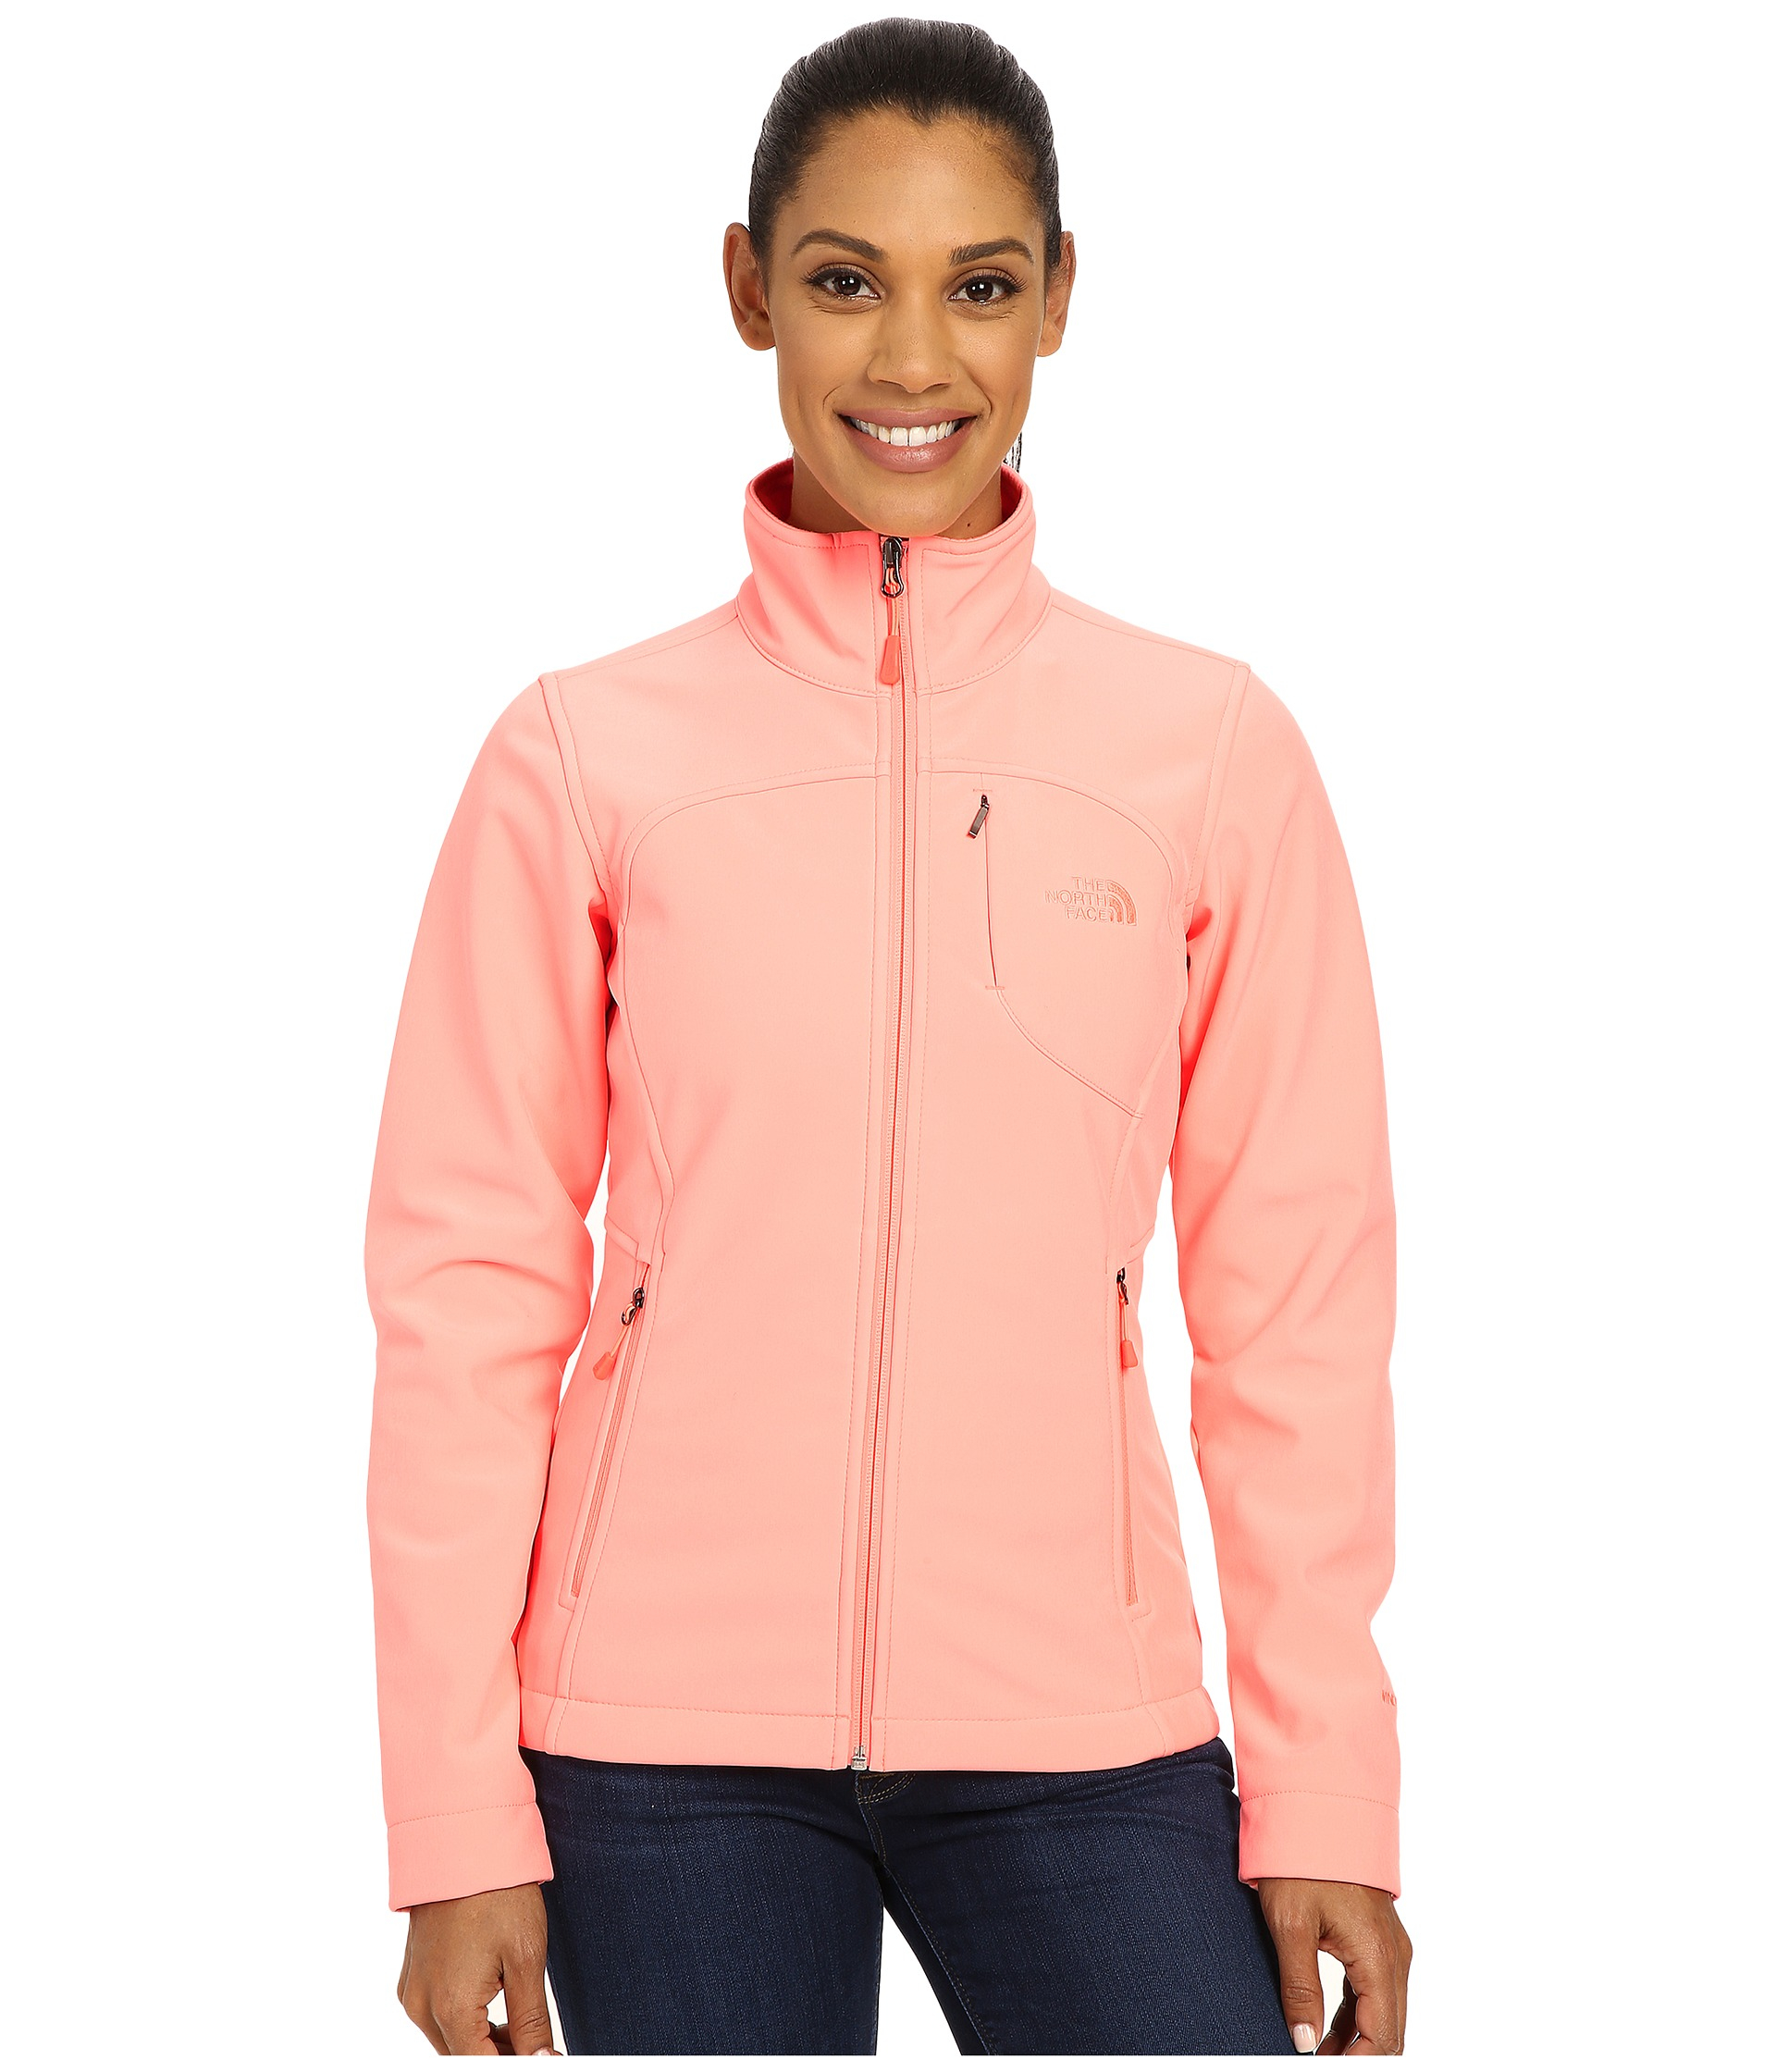 7b8a90db5 The North Face Pink Apex Bionic Jacket